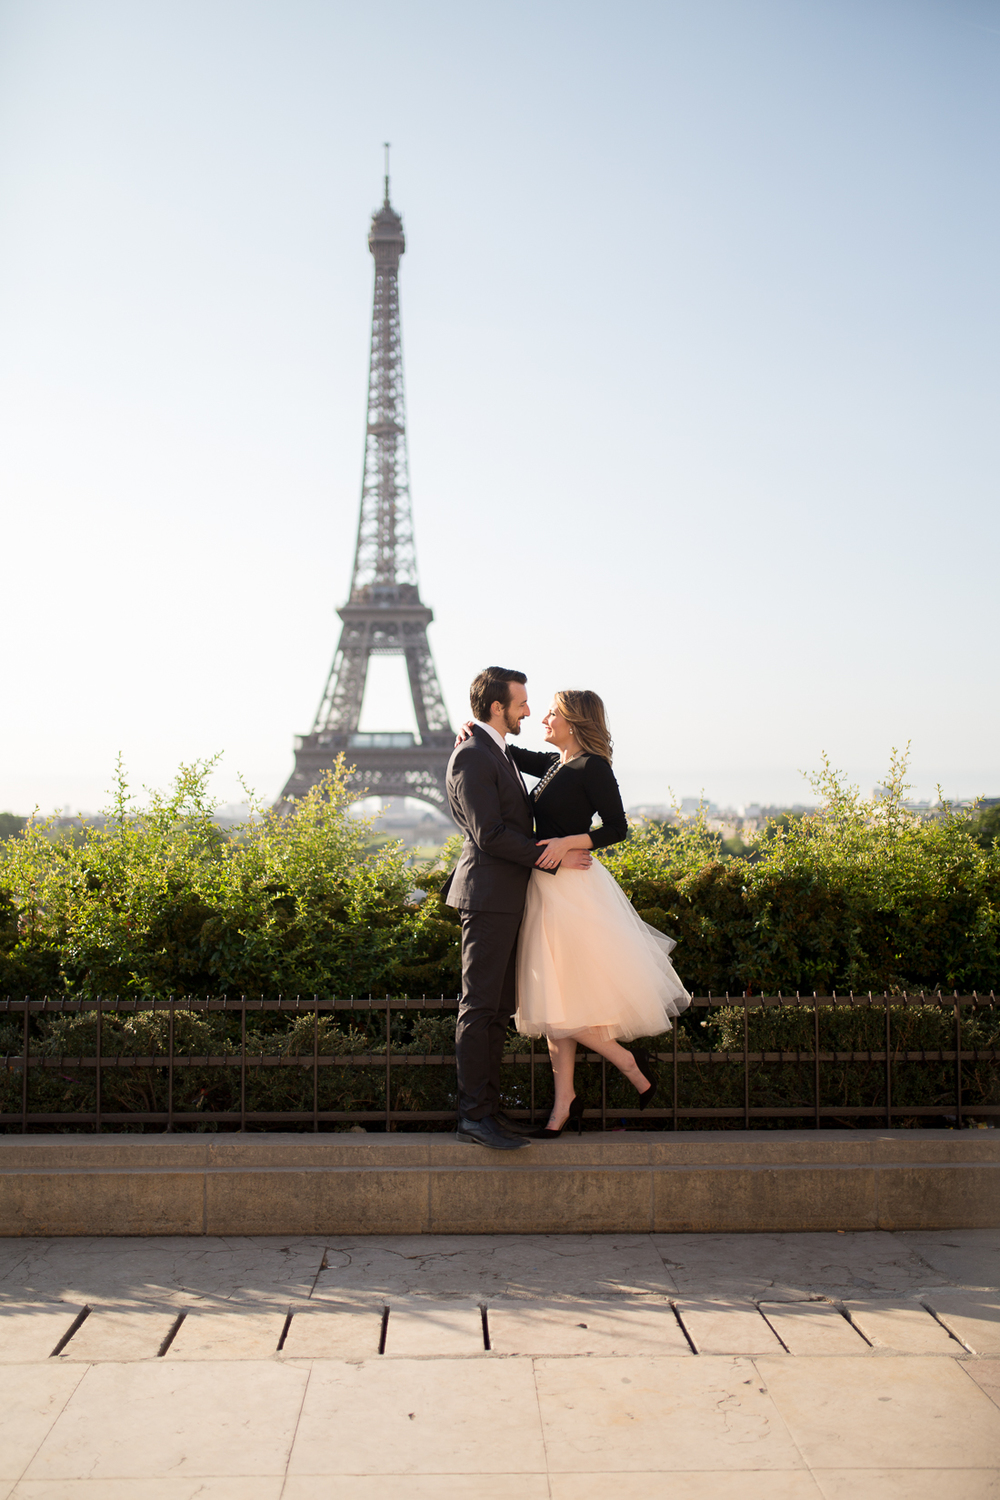 romantic-fun-honeymoon-ideas-in-paris-photo-shoot-12